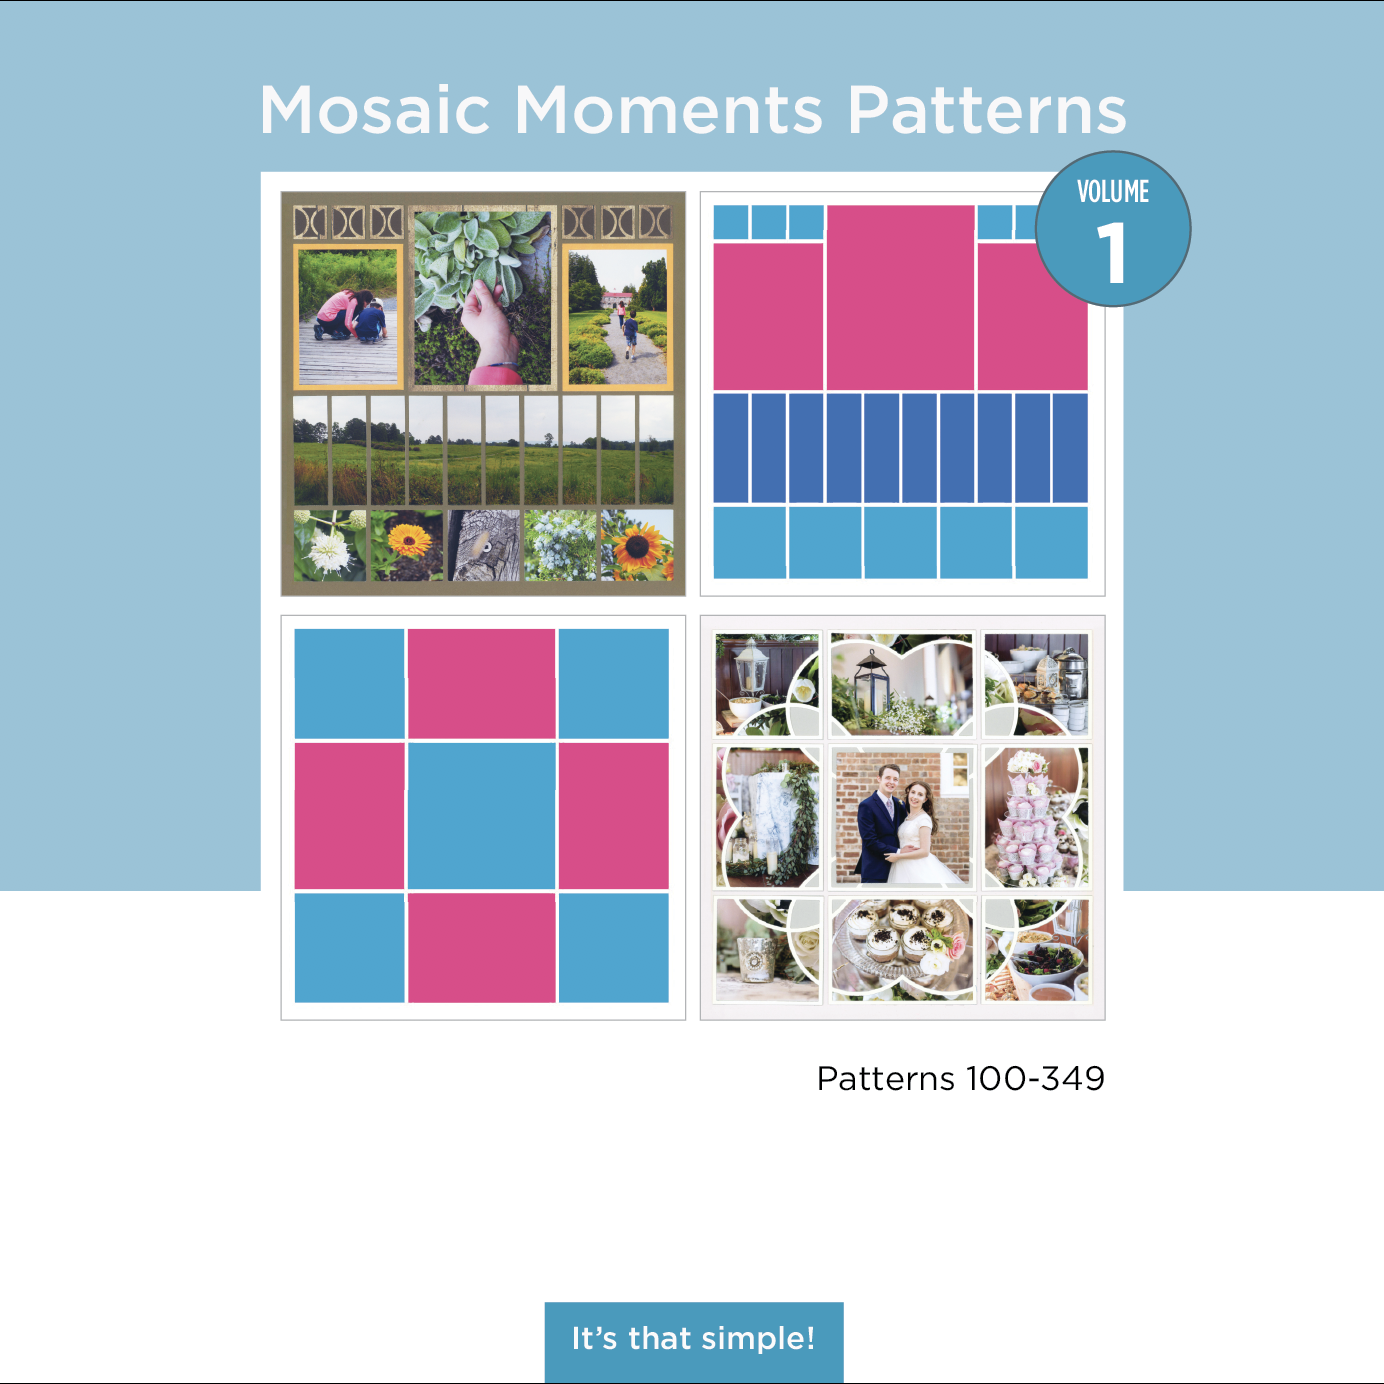 MOSAIC MOMENTS PATTERNS BOOK VOLUME 1